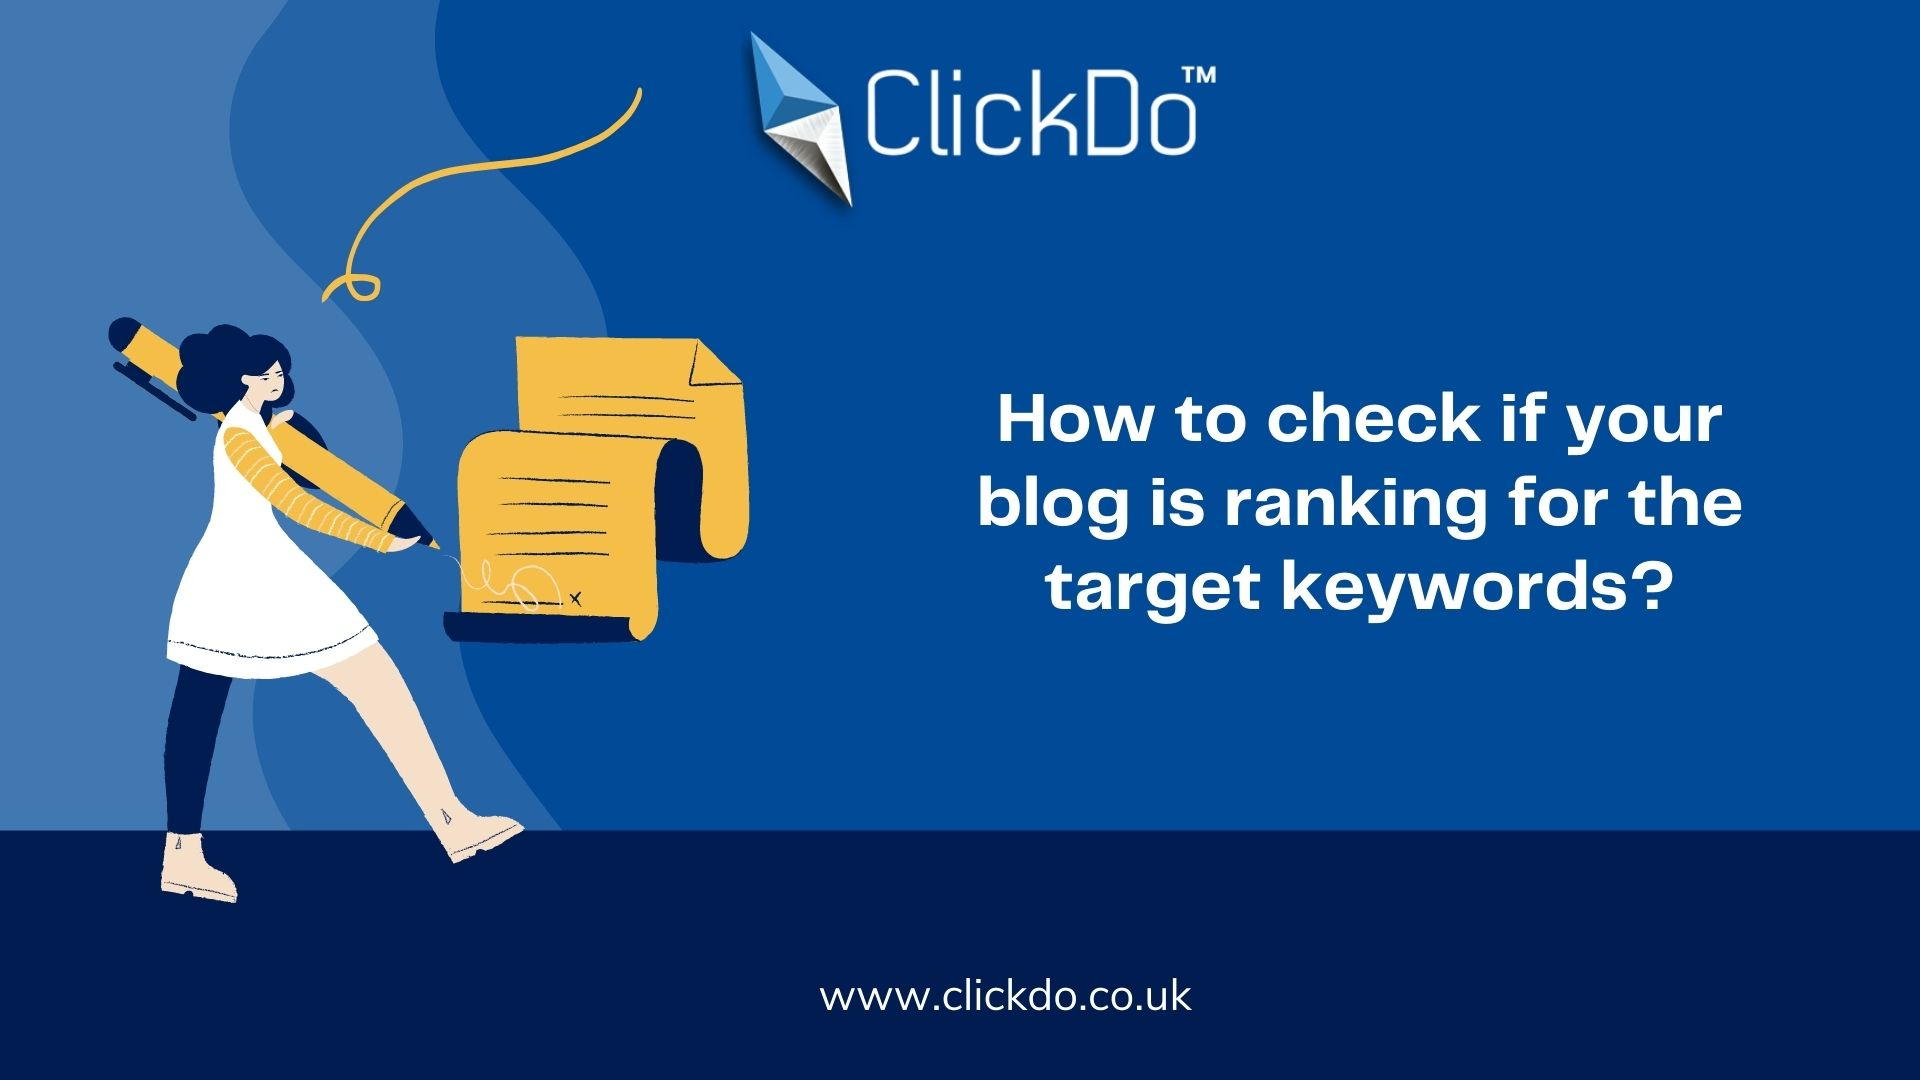 How to check if your blog is ranking for the target keywords